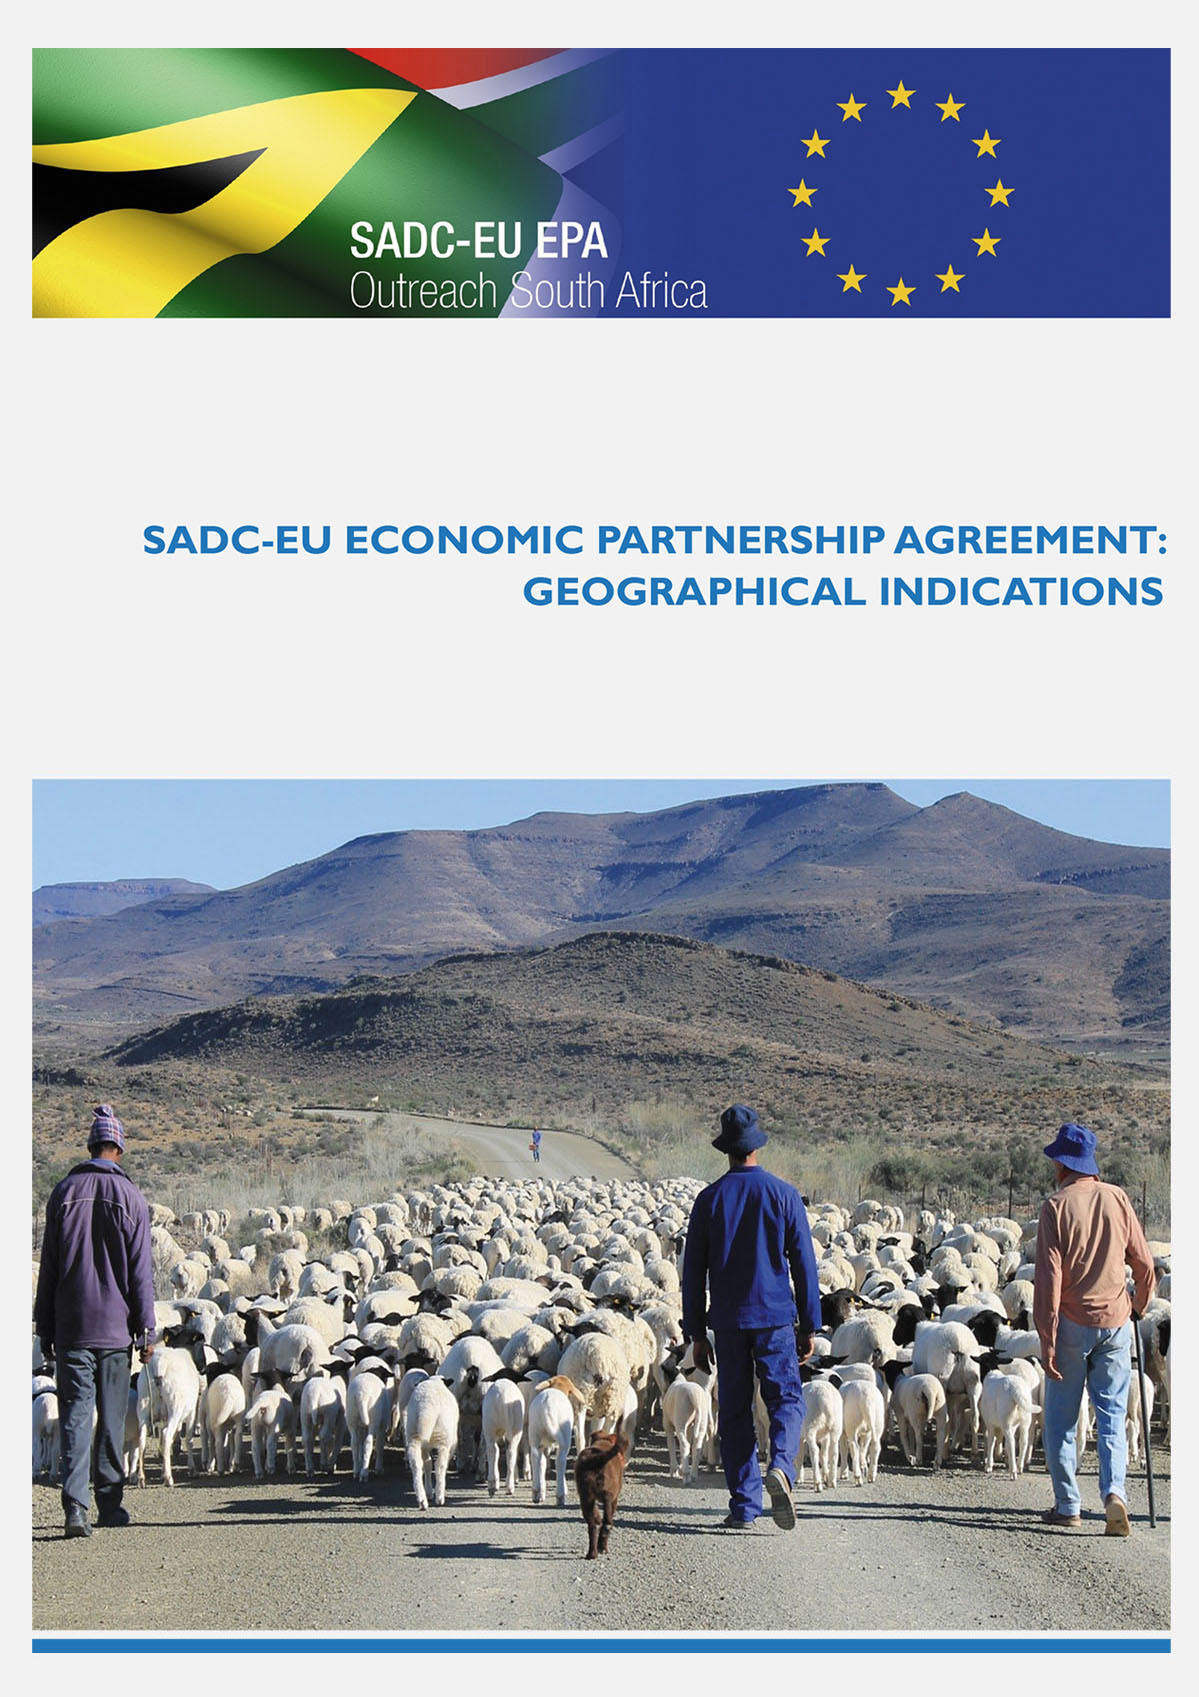 SADC-EU EPA: Geographical Indications